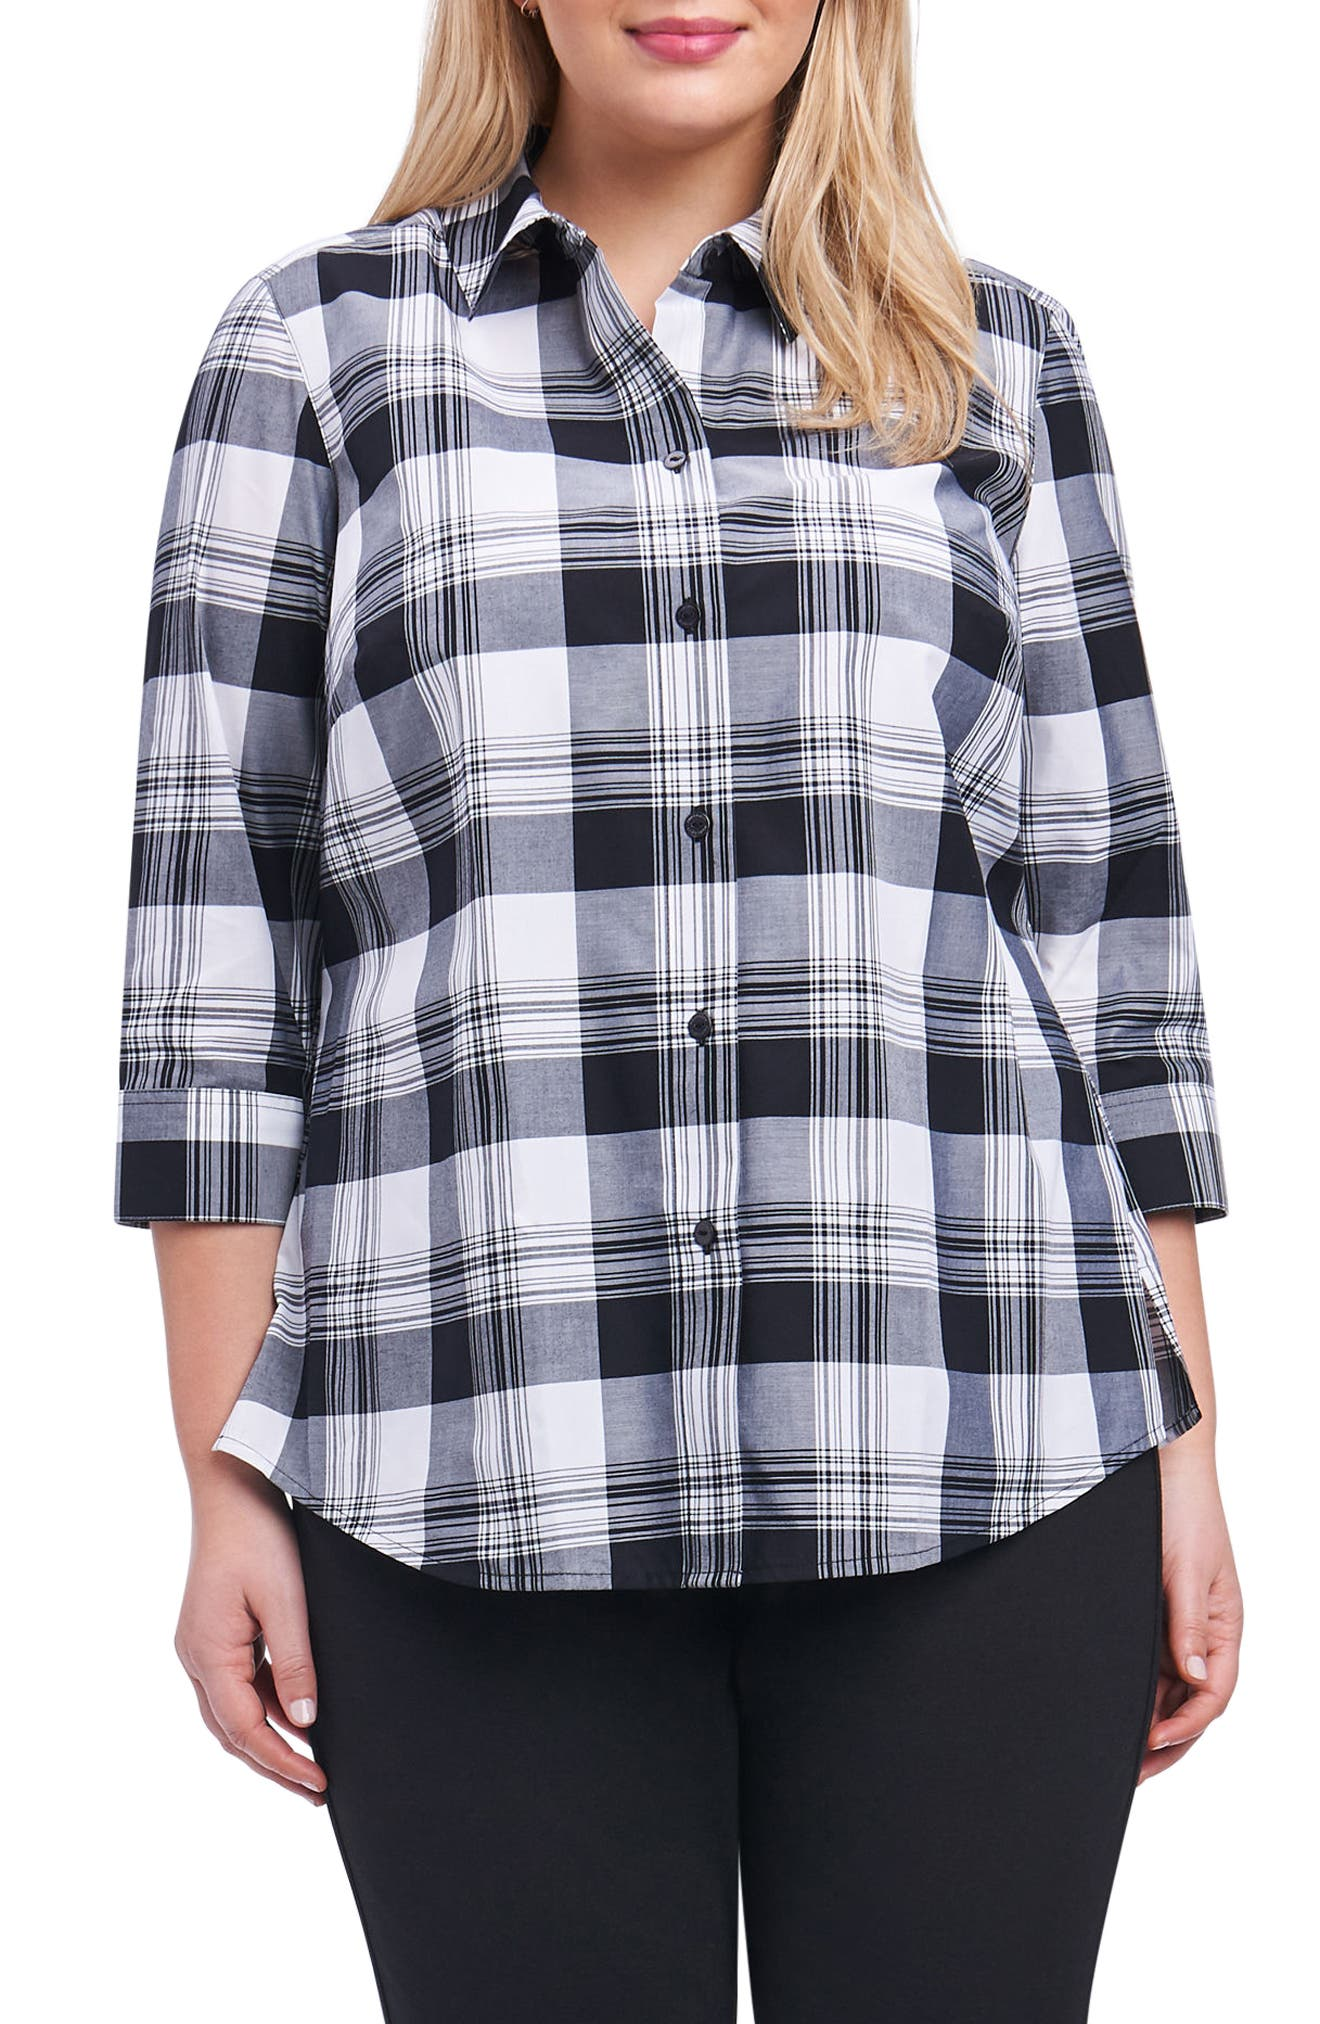 Alternate Image 1 Selected - Foxcroft Sue Shaped Fit Plaid Shirt (Plus Size)